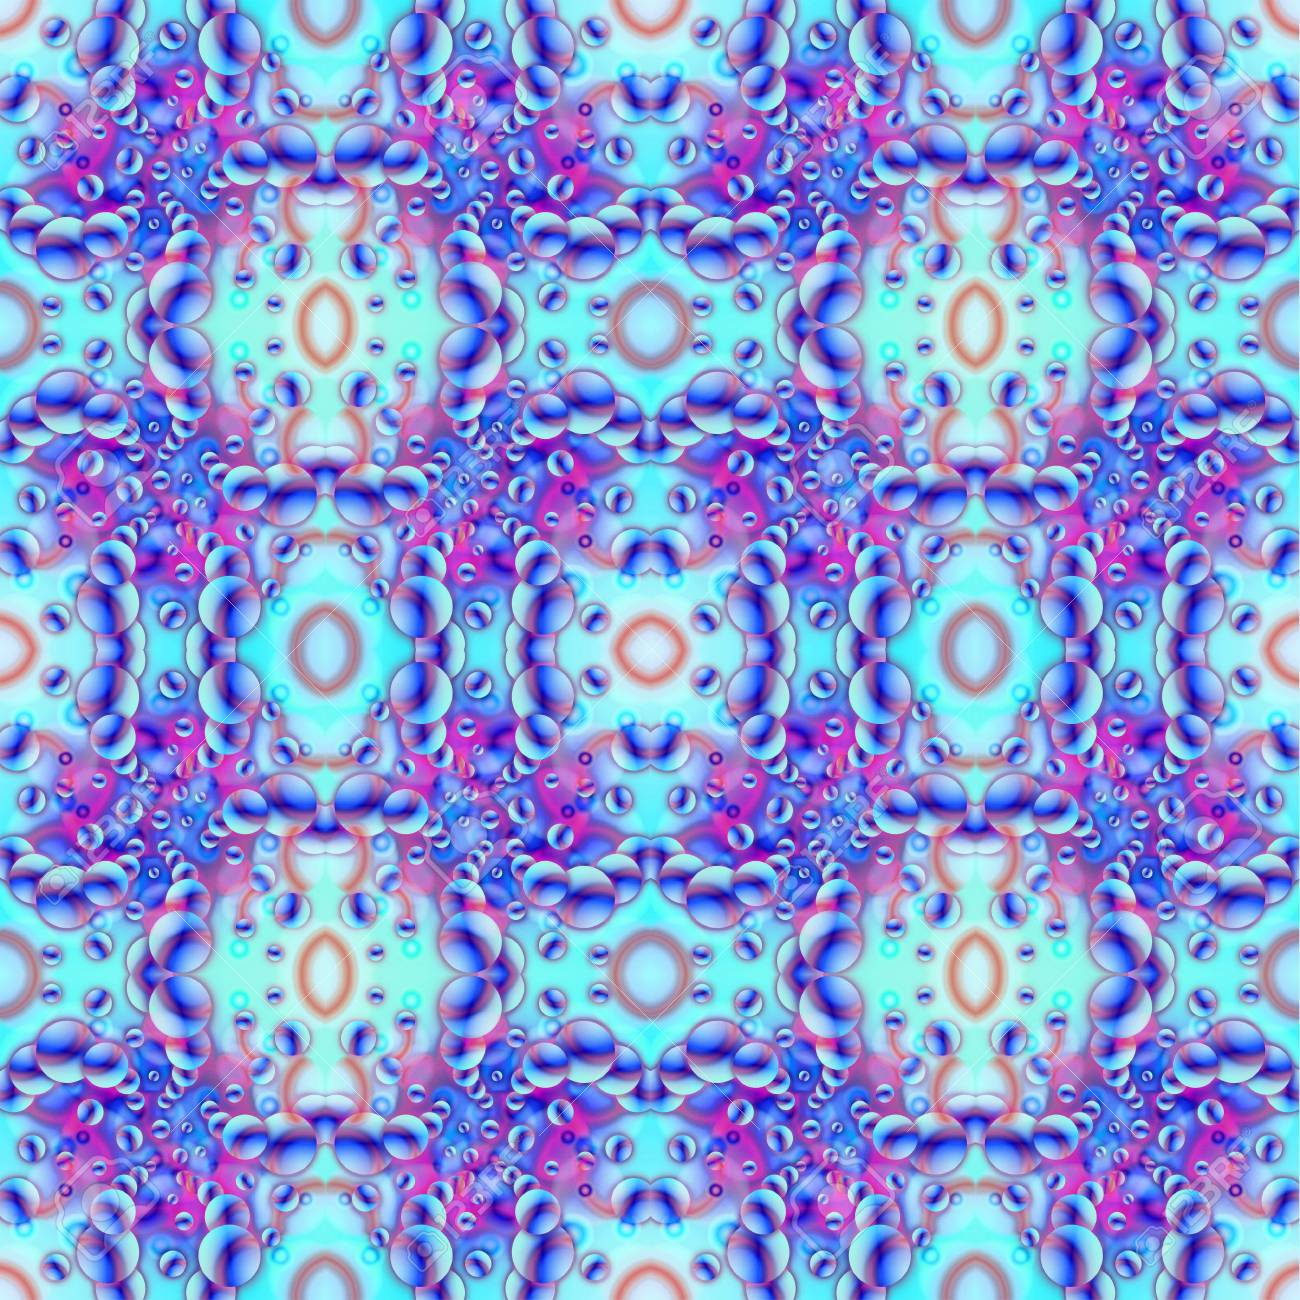 Background Psychedelic Visions Stock Photo - 19279186